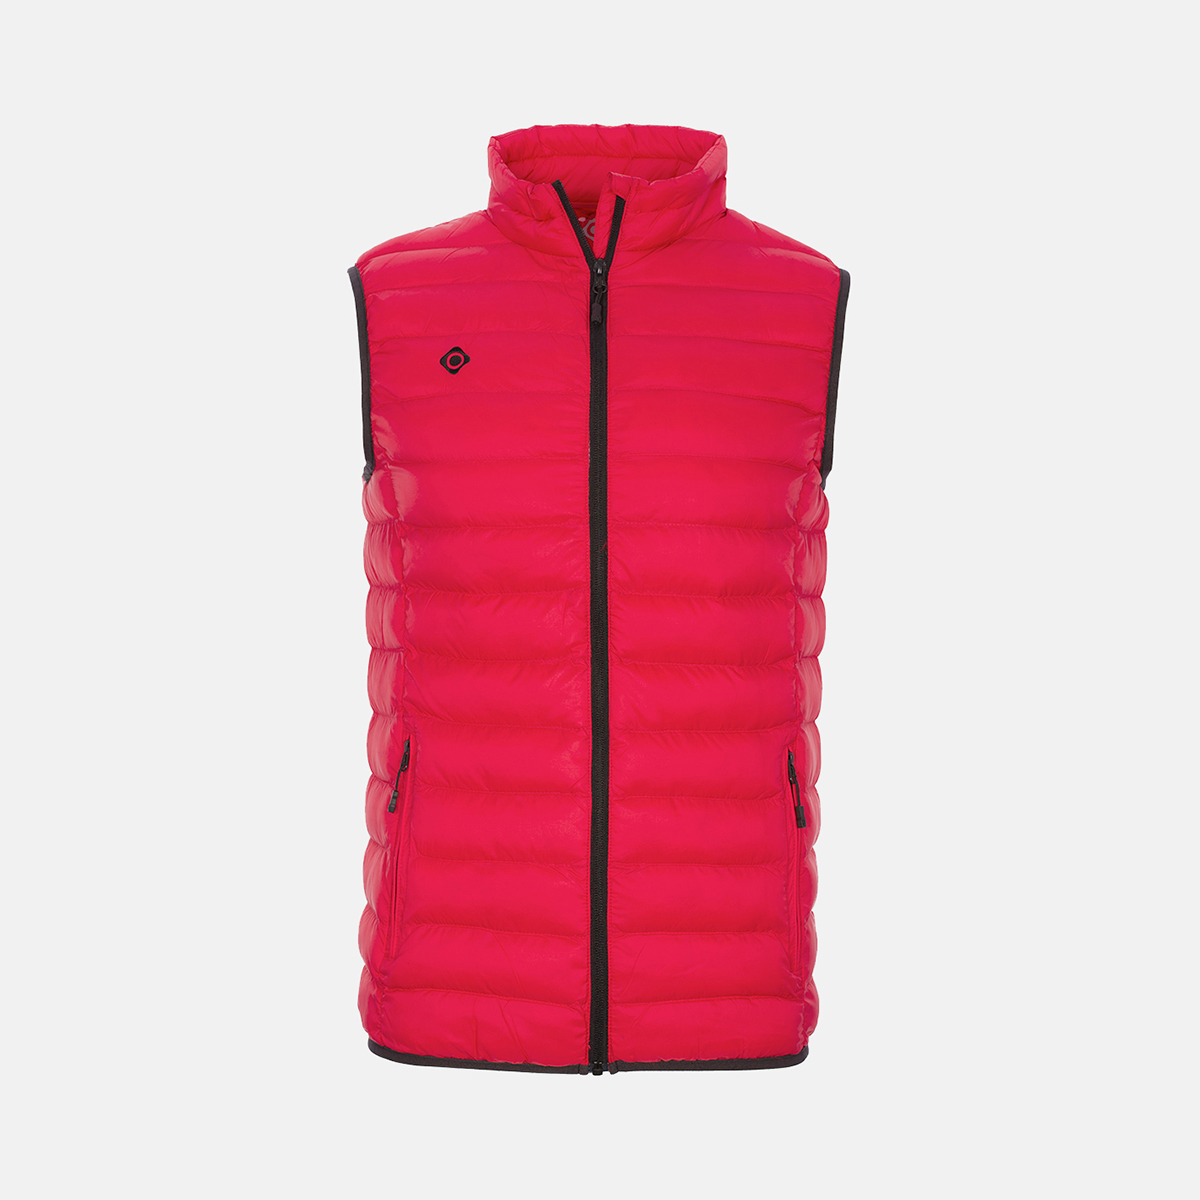 MAN'S TYREE PADDED VEST RED